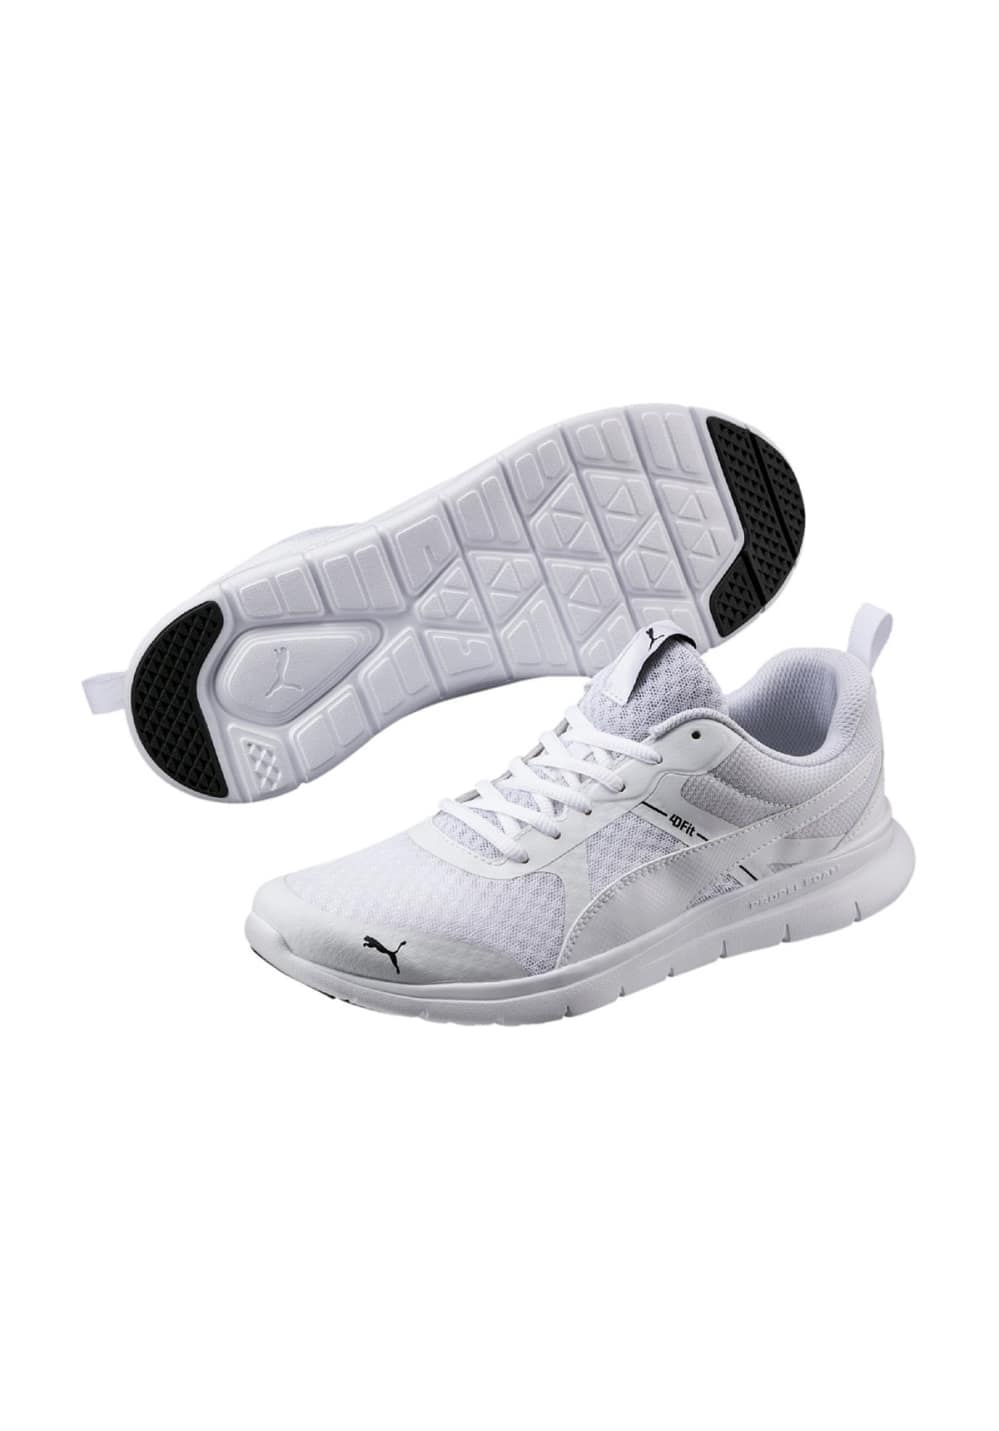 f4a1fef14937 ... Puma Flex Essential - Running shoes - White. Back to Overview. -35%